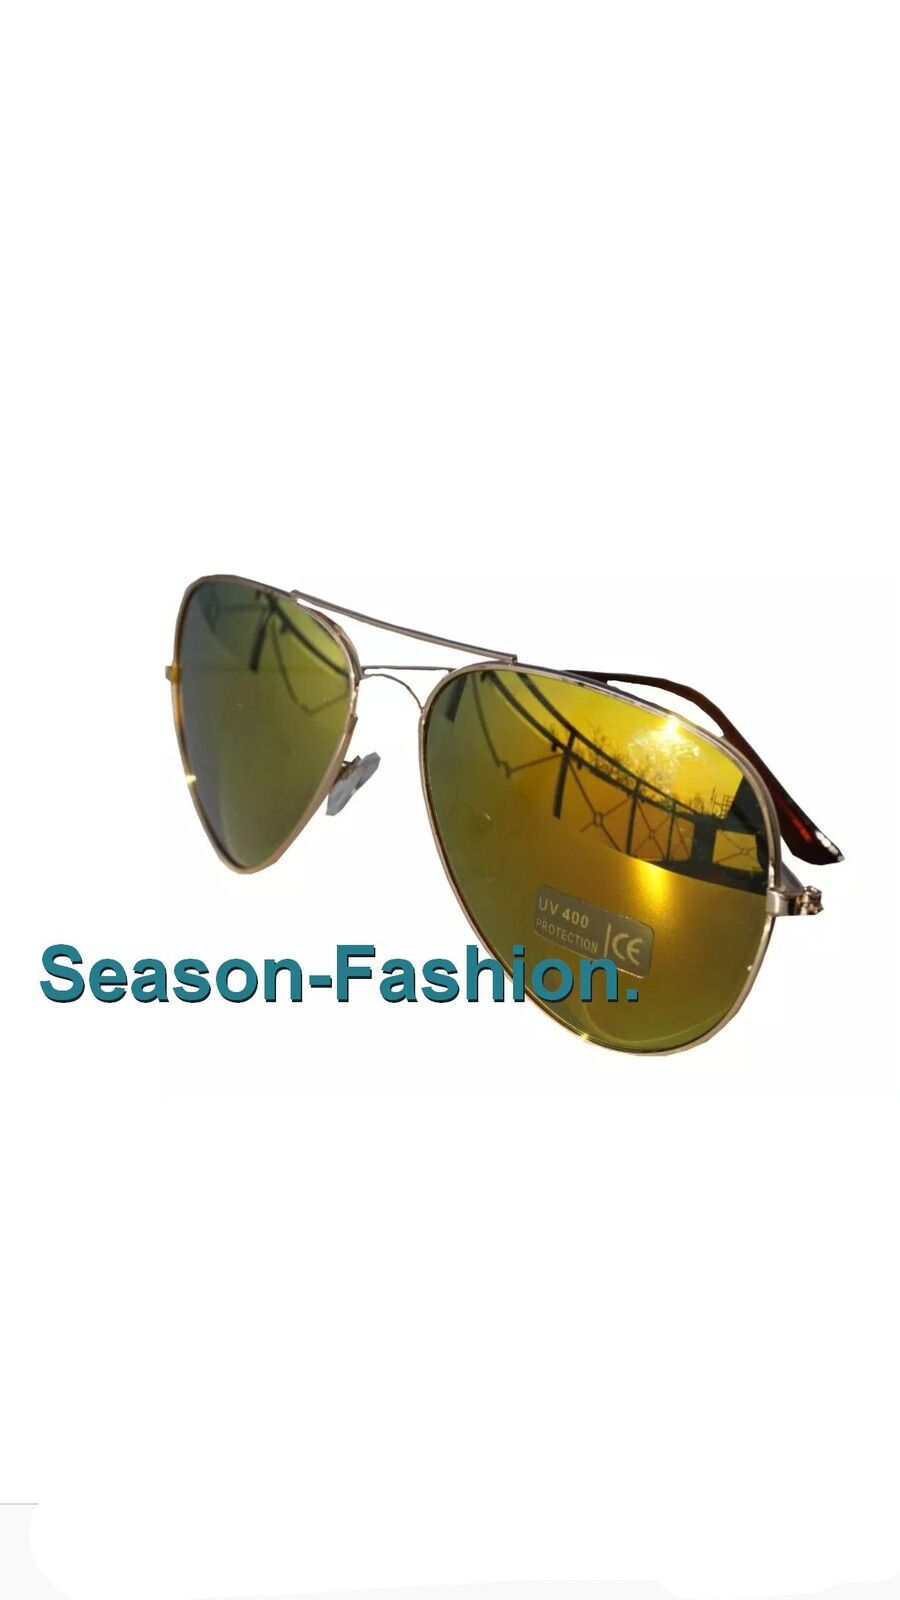 Season-Fashion